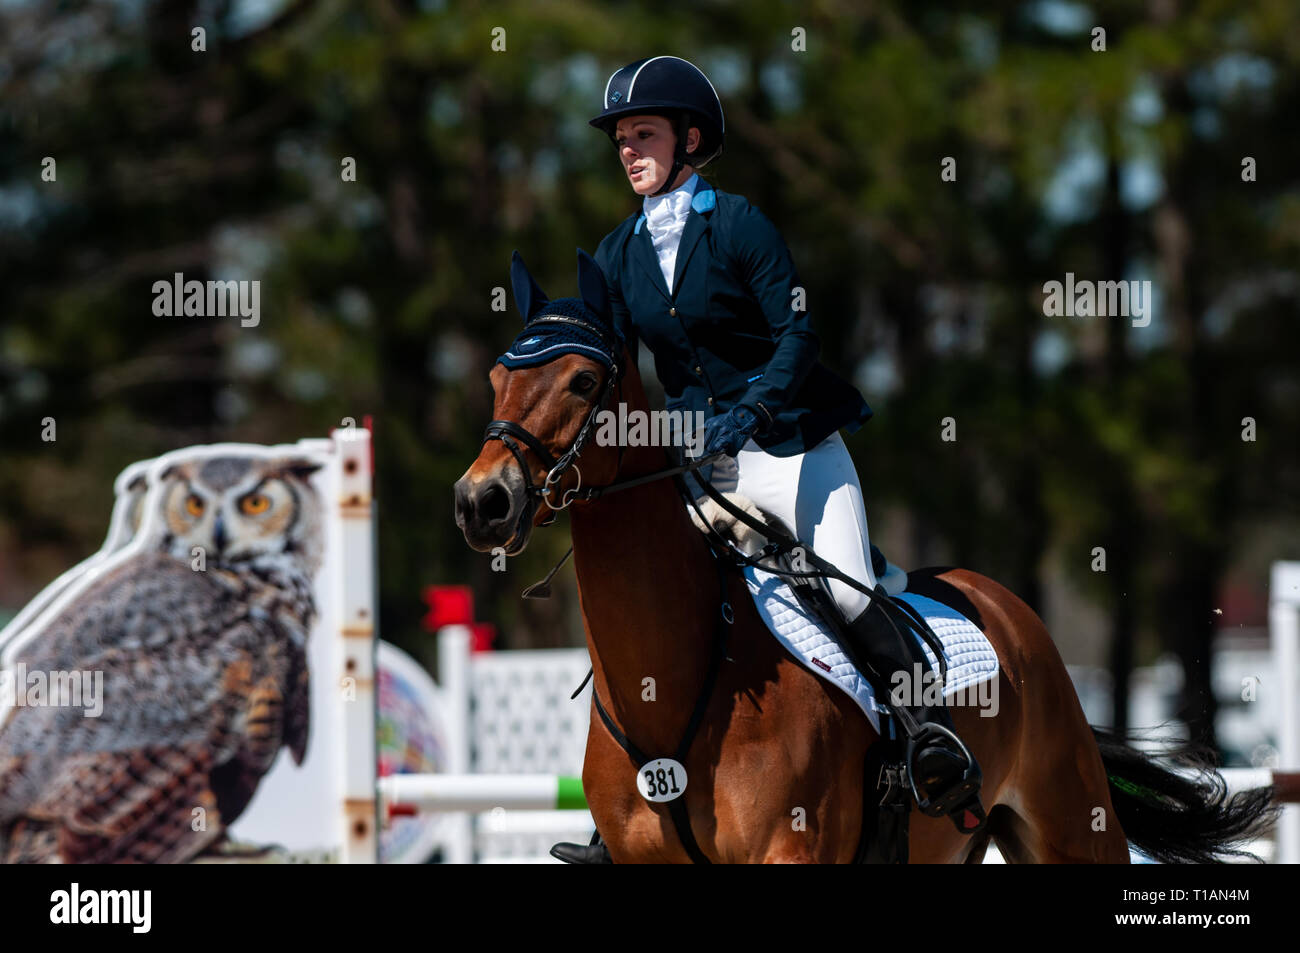 Raeford, North Carolina, USA. 24th Mar, 2019. March 24, 2019 - Raeford, N.C., USA - KRISSY SMITH SHELLENBERGER of the United States riding LOUGHNATOUSA MAC competes in the Training Rider division show jumping at the sixth annual Cloud 11-Gavilan North LLC Carolina International CCI and Horse Trial, at Carolina Horse Park. The Carolina International CCI and Horse Trial is one of North America's premier eventing competitions for national and international eventing combinations, hosting International competition at the CCI2*-S through CCI4*-S levels and National levels of Training through Advan - Stock Image